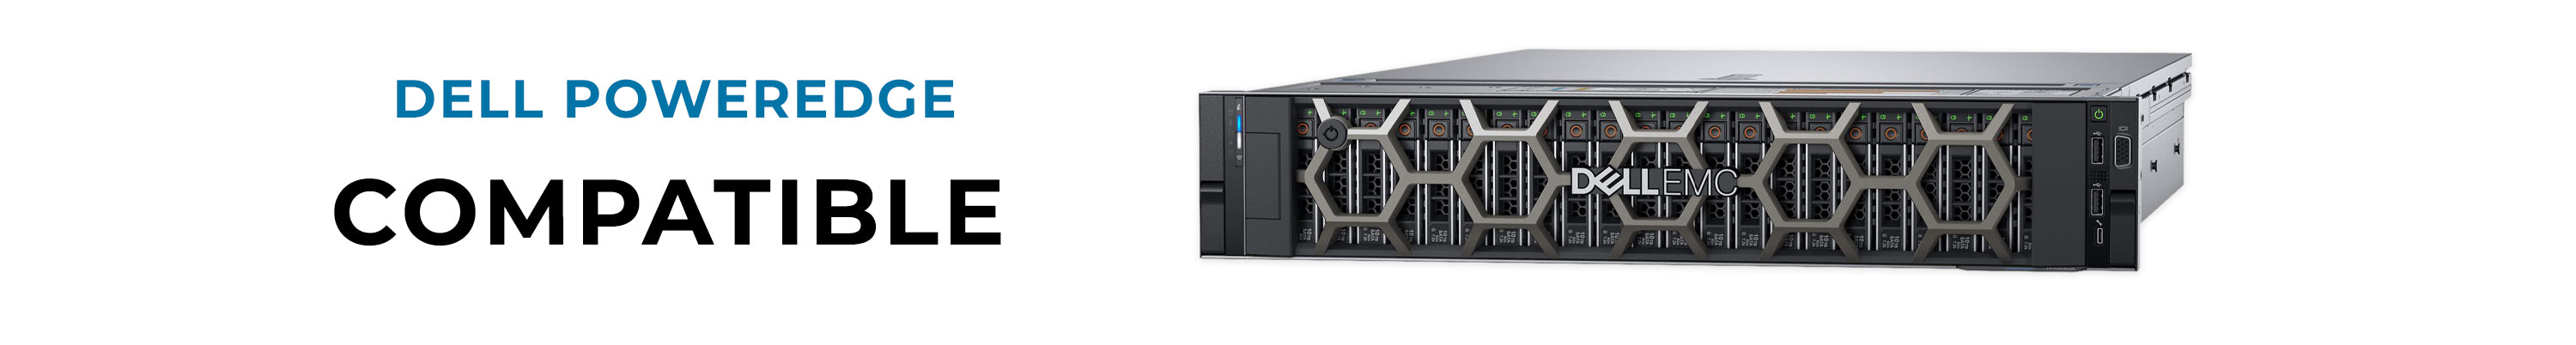 poweredge compatible sff options